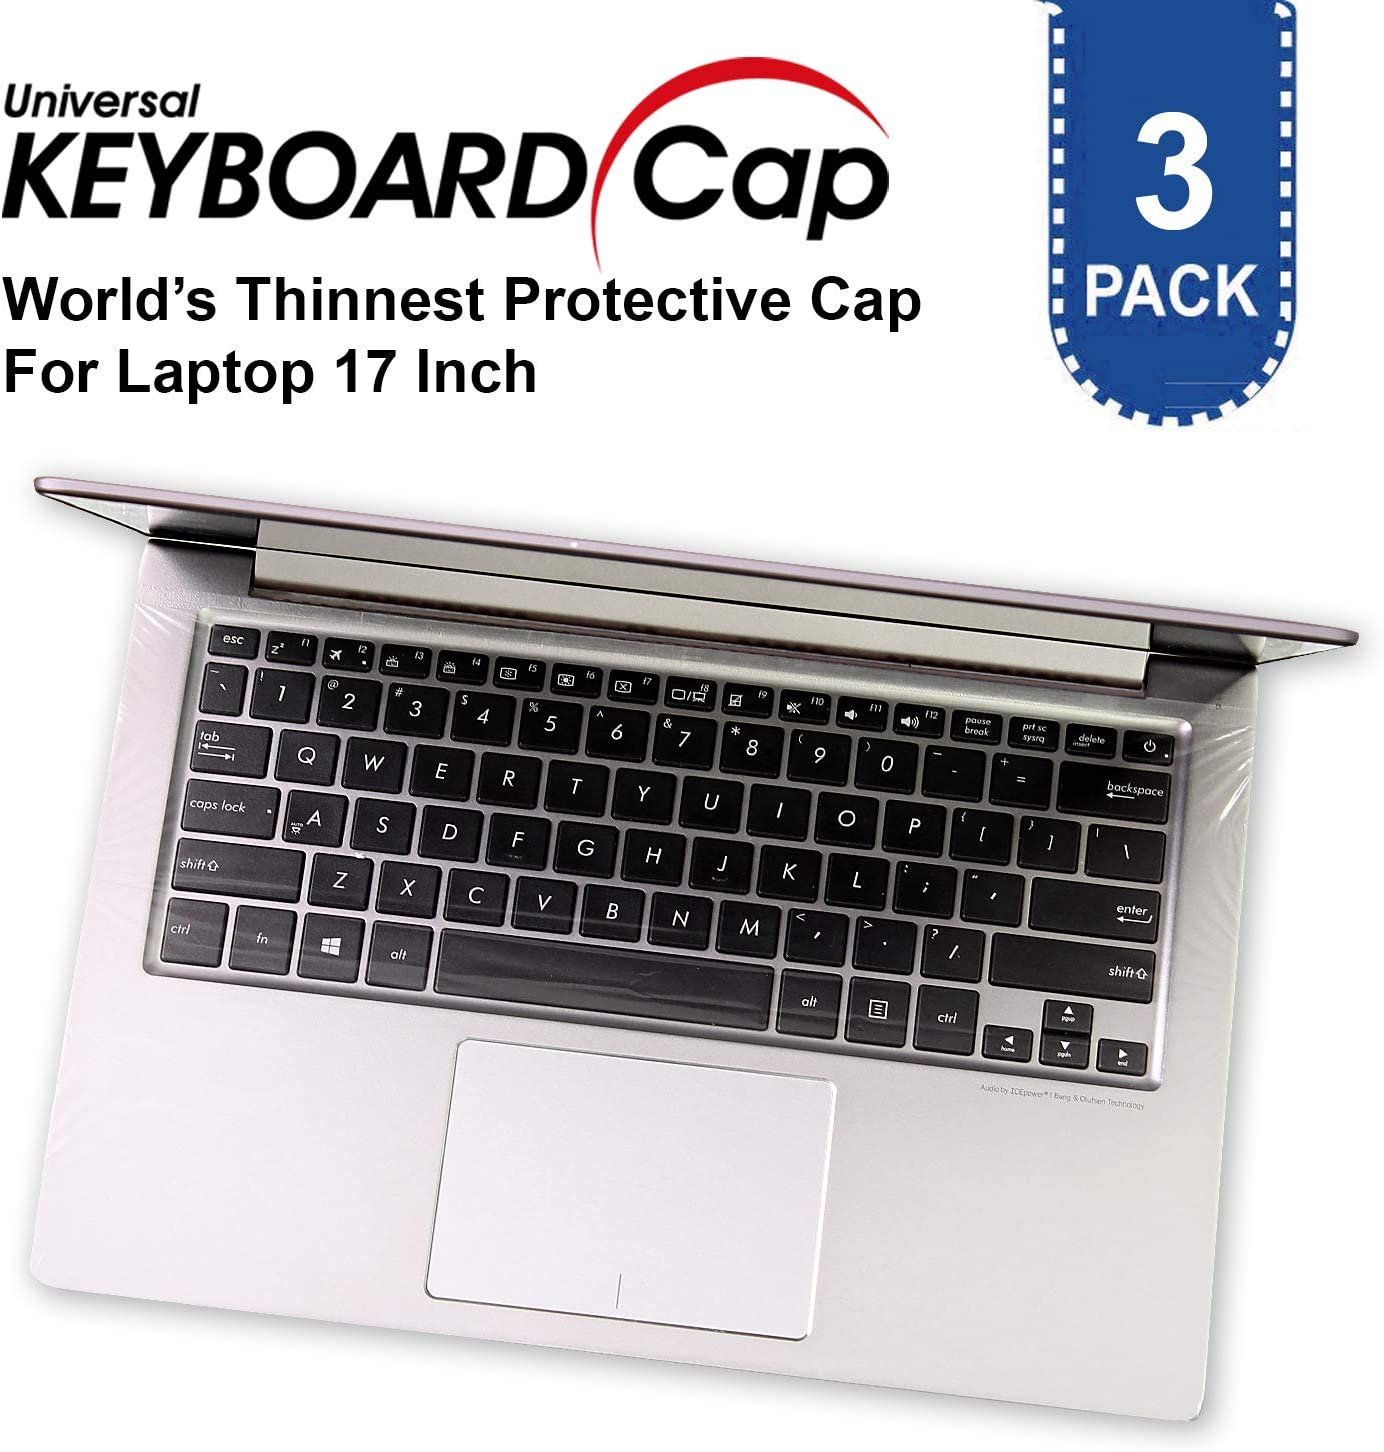 Fully Covered Flat Style Universal 0.025mm Wipeable Superb Tactile Feeling Waterproof Anti-Dust Keyboard Cap Cover for Laptop 17 Inch Hospital/Dentist Use [3 Pack]